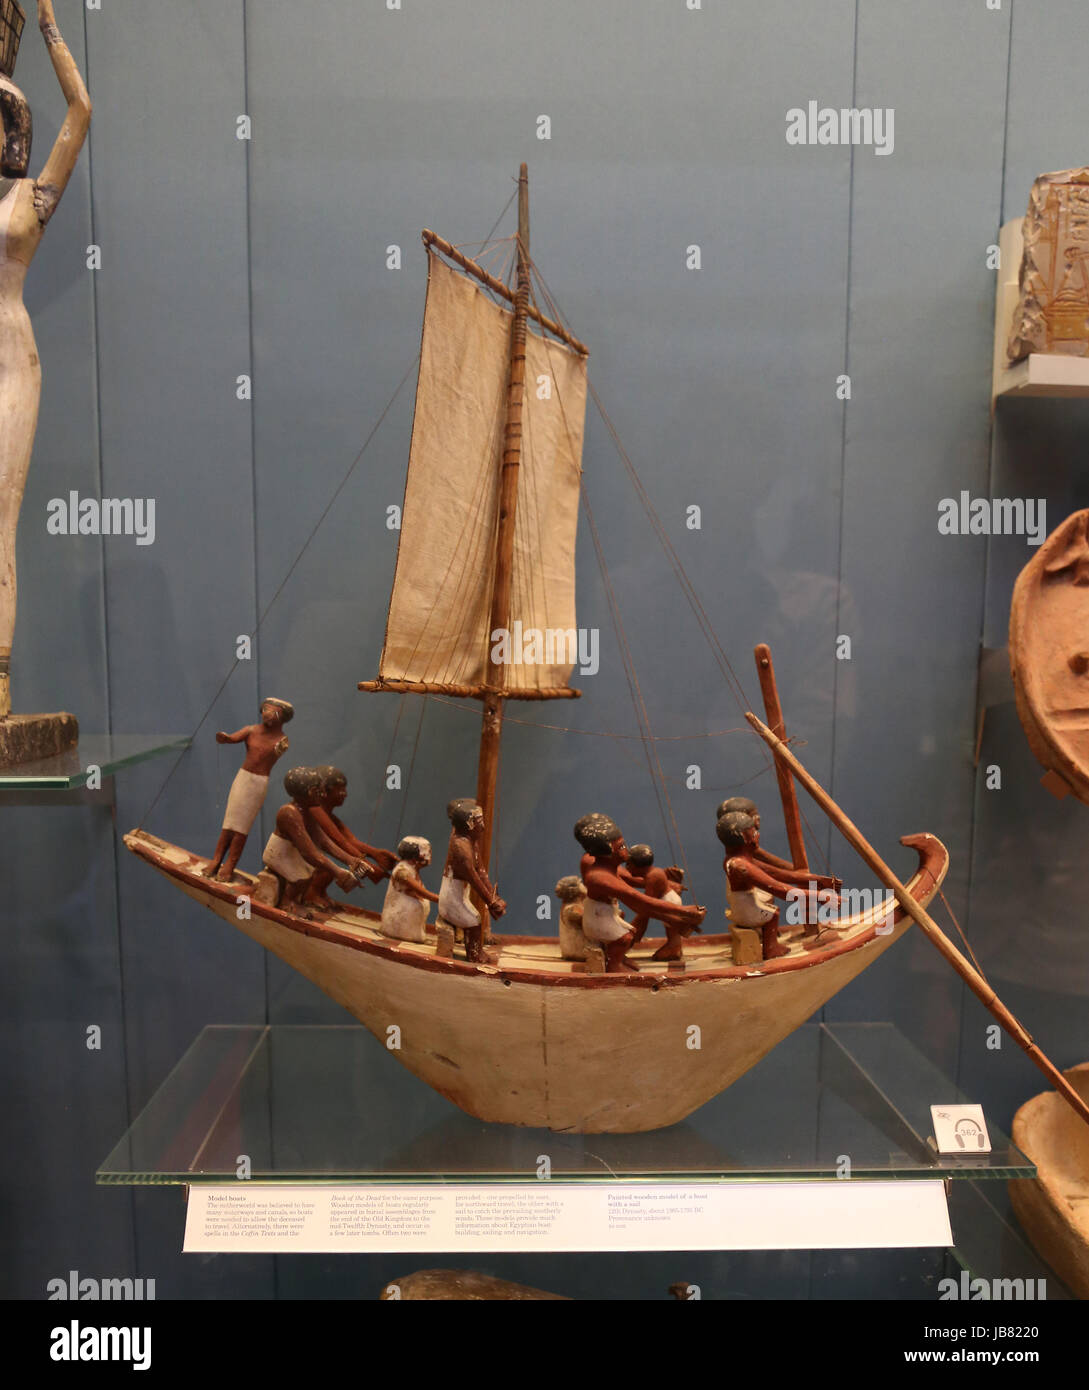 Wooden model of sailing boat. 12th century, about 1985-1795 BC. Provenance unknown. British Museum. London. UK. - Stock Image